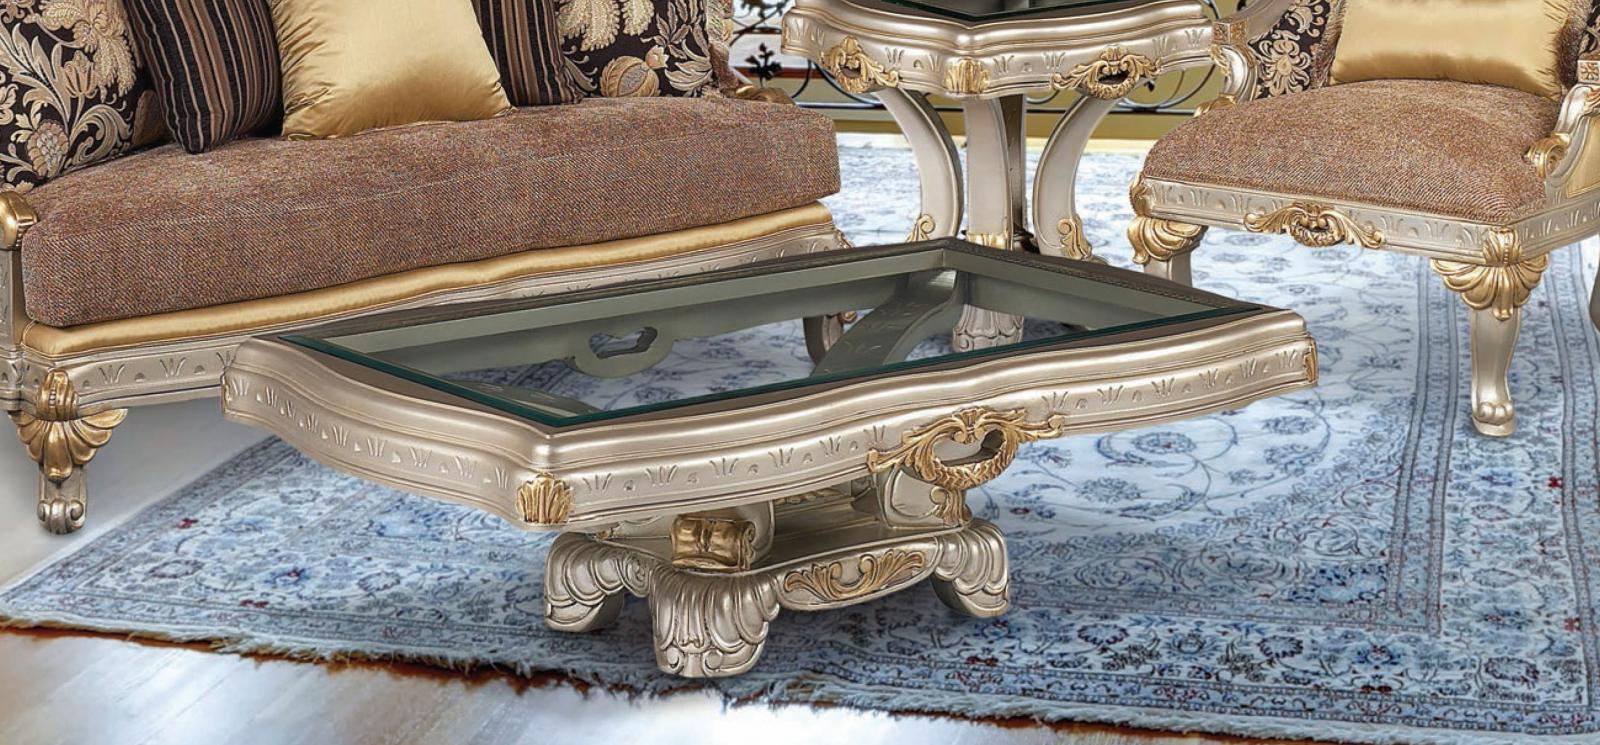 Classic, Traditional Gold, Silver  and Glass, Wood, Solid Hardwood Cocktail Table 1 pcs Firenza  by Benneti